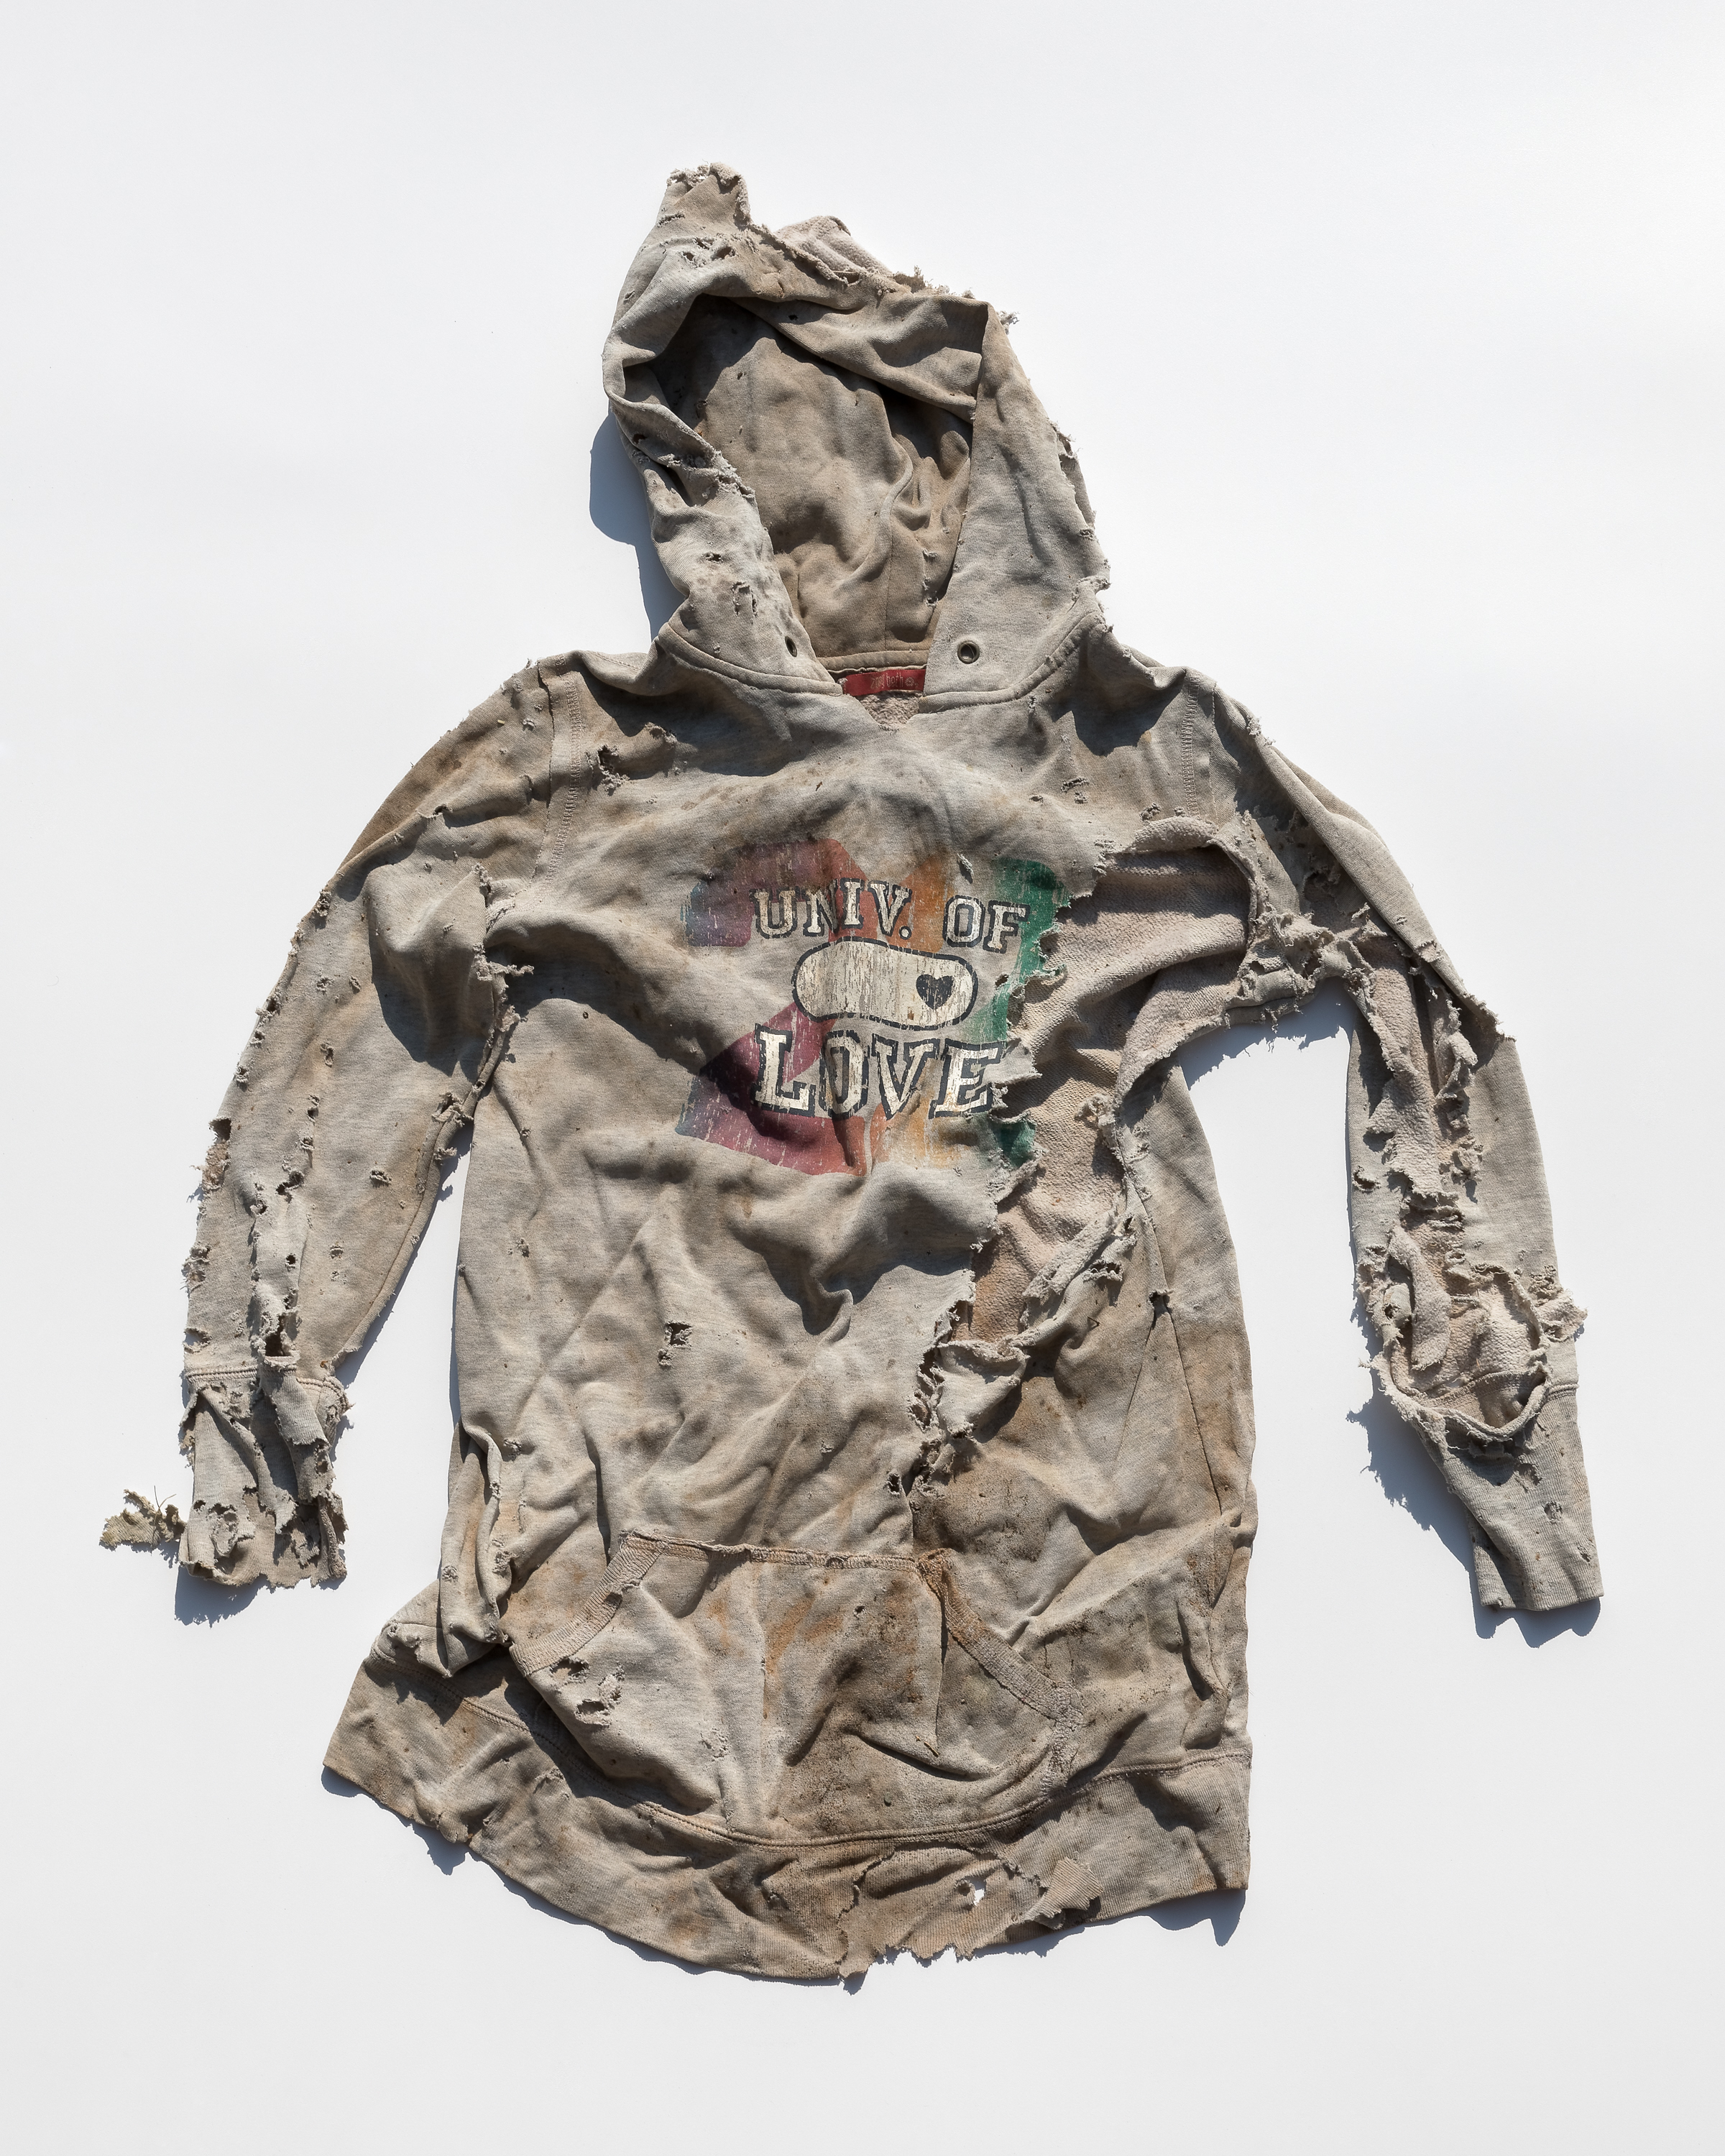 A severely rumpled, torn and dirty gray hooded sweatshirt depicts the text: Univ. of Love